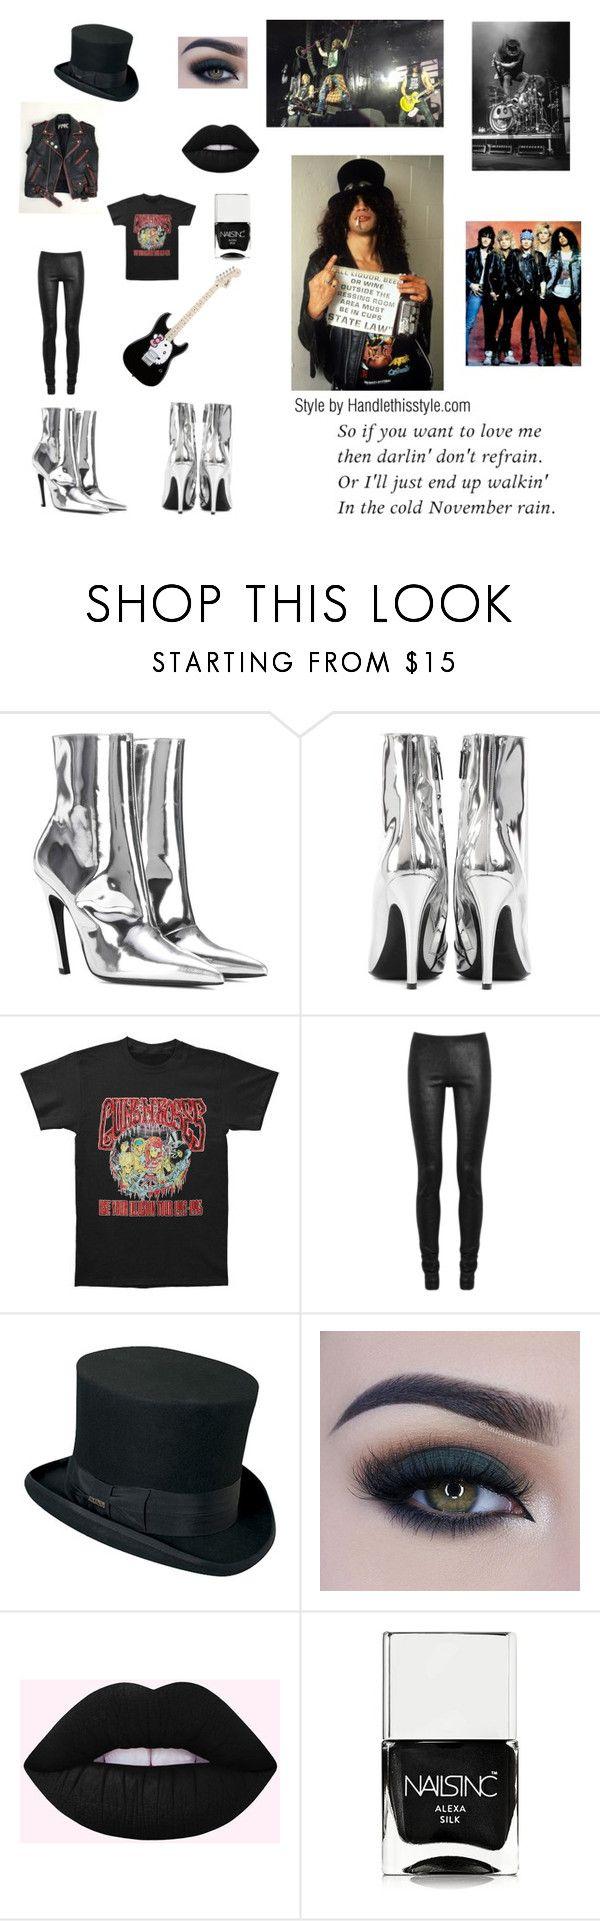 """""""Guns N Roses! My New Blog Post tomorrow will be Guns N Roses! Yay!"""" by handlethisstyle ❤ liked on Polyvore featuring Balenciaga, Rick Owens, Hello Kitty, Too Faced Cosmetics and Nails Inc."""